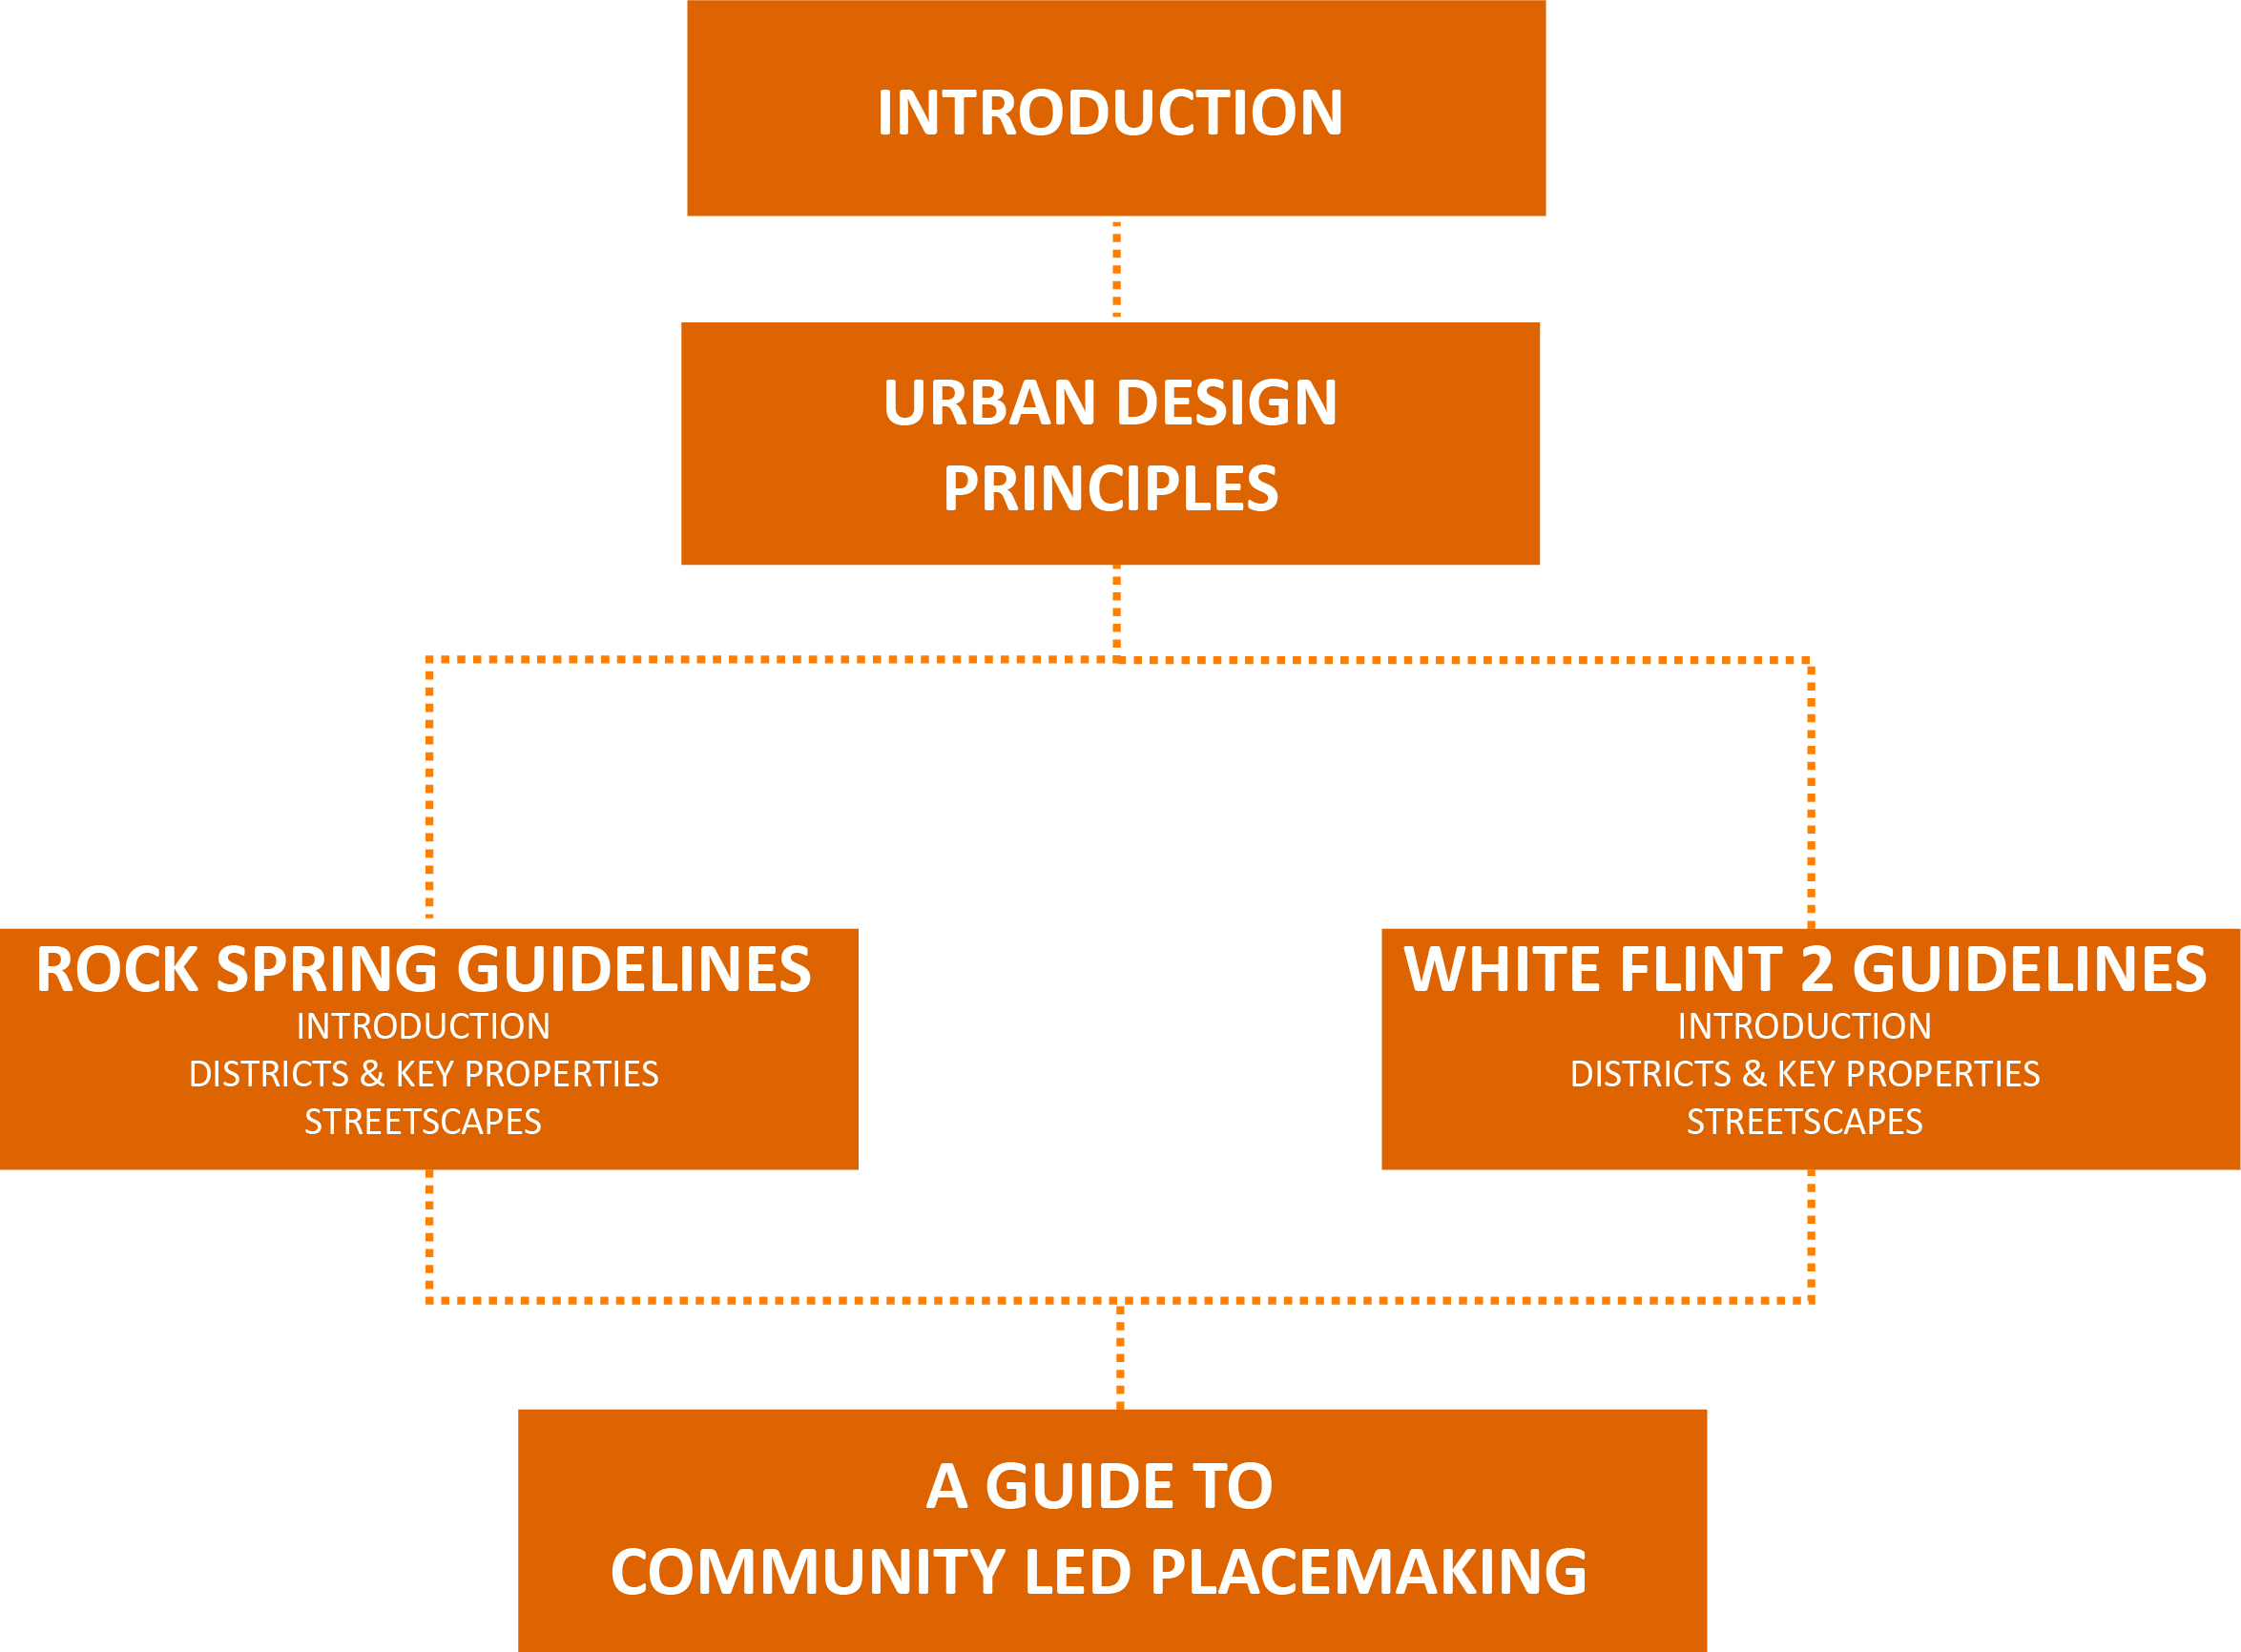 white flint 2 rock spring design guidelines intro